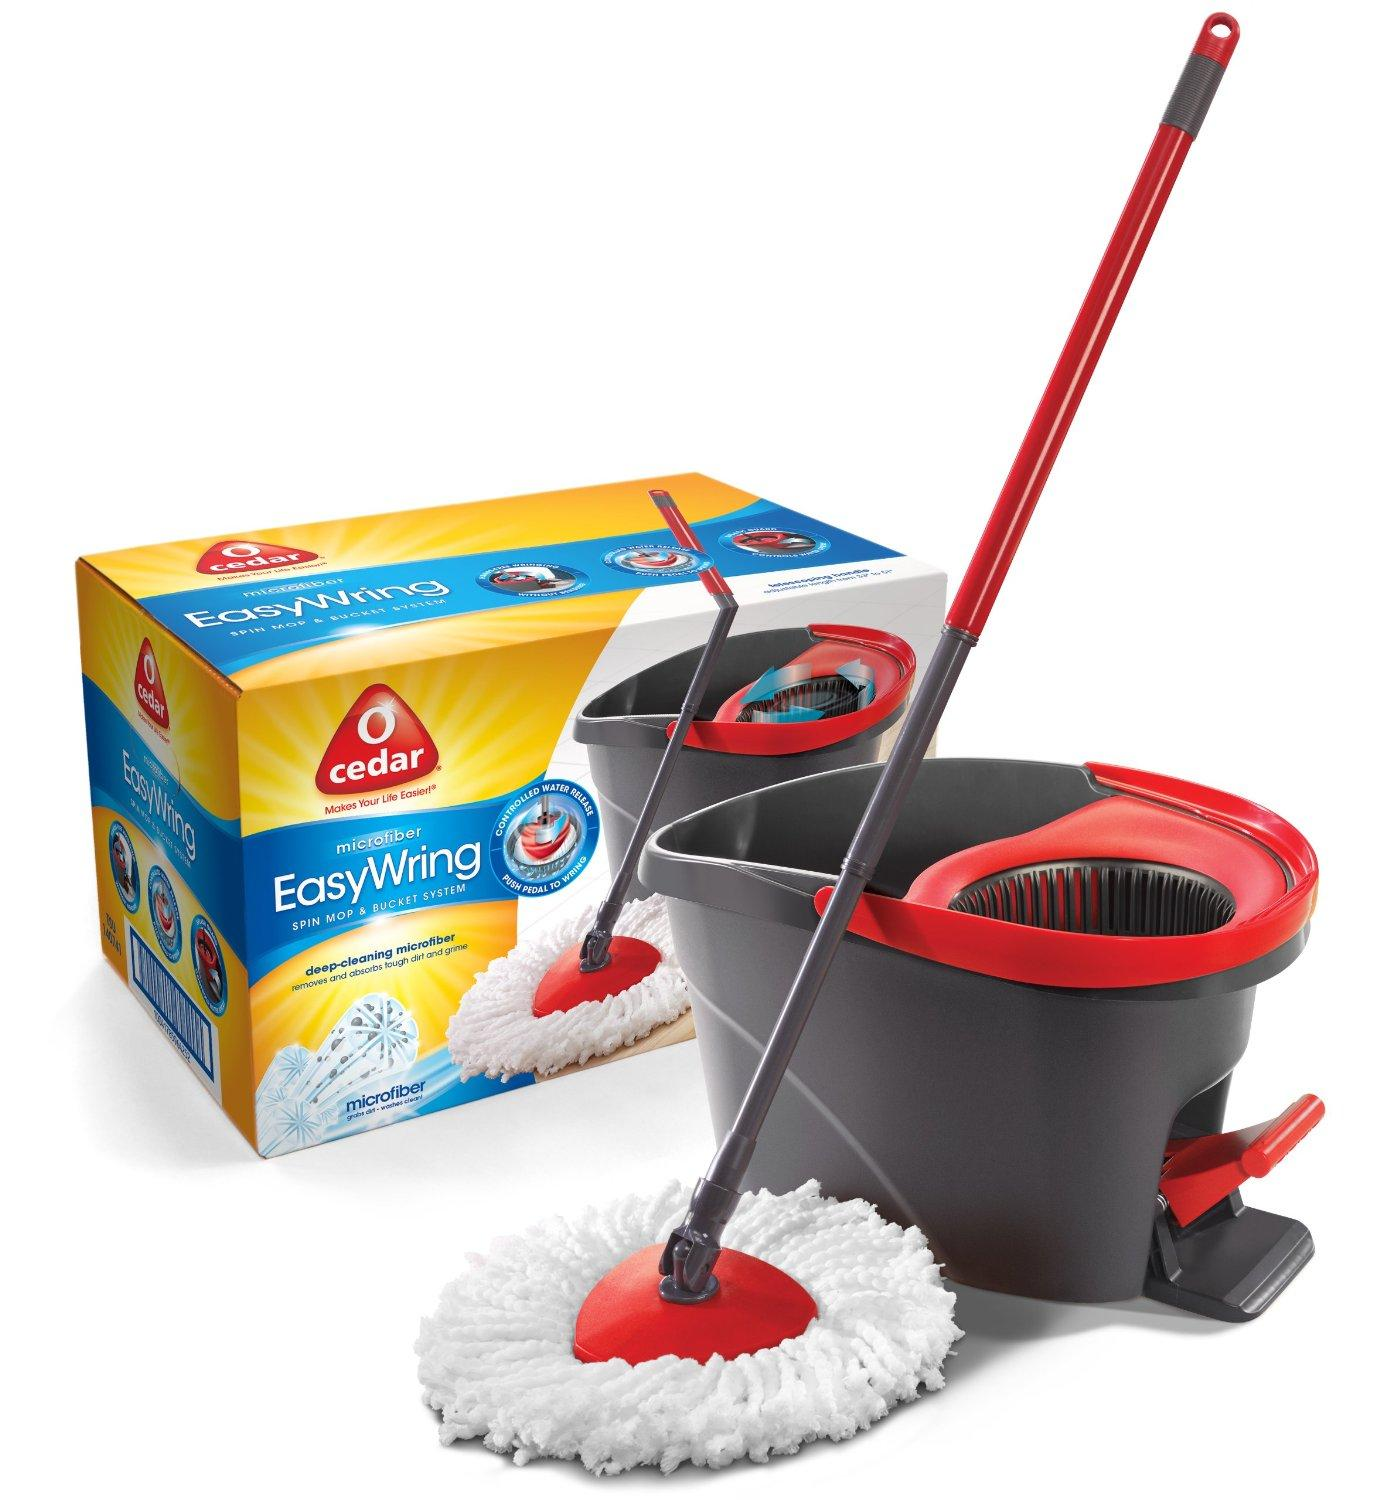 Recommended Amazon Item of the Week $42.99 O-Cedar Easy Wring Microfiber Spin Mop & Bucket System